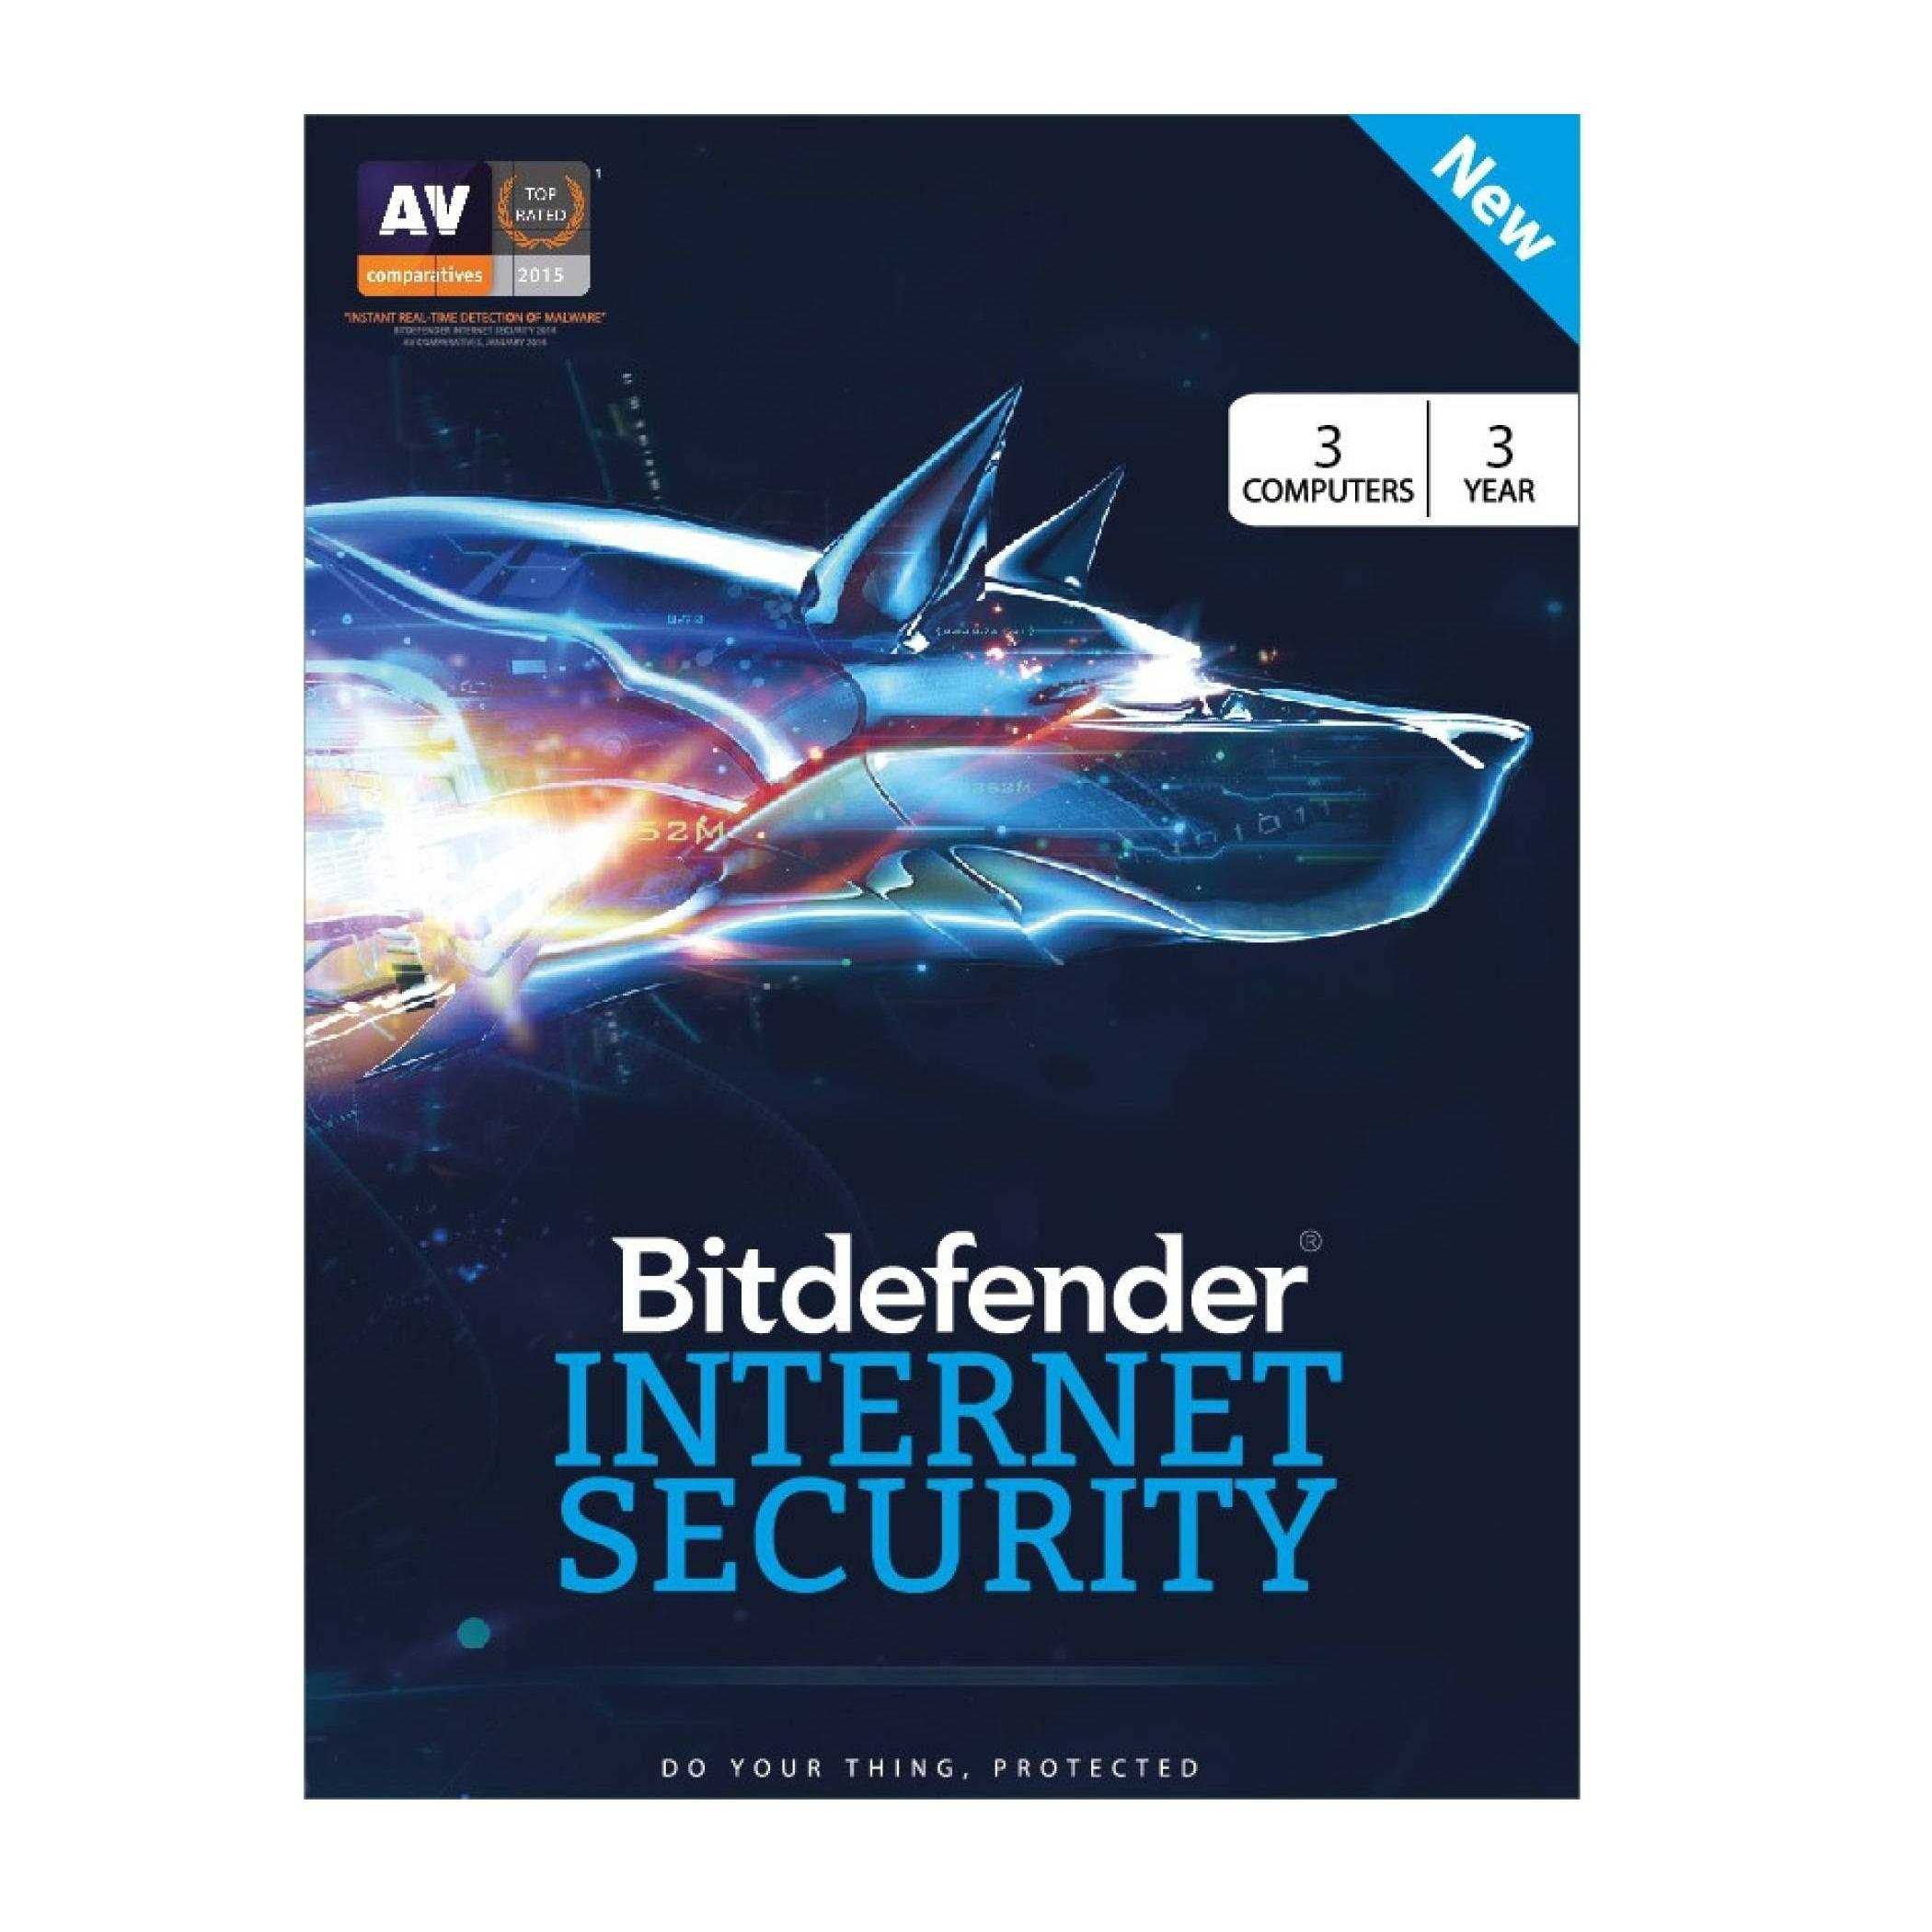 Bitdefender Total Security - 5 Devices - 1 Year - Multi Device Bitdefender Total Security - 5 Devices - 1 Year - Secure up to 5 different devices: Windows, Mac OS, iOS and Android. The New Bitdefender Total Security Multi Device for Is Now Out! The Best Cybersecurityin theWorld, Time Winner awarded by PC MAG. Best Protection.